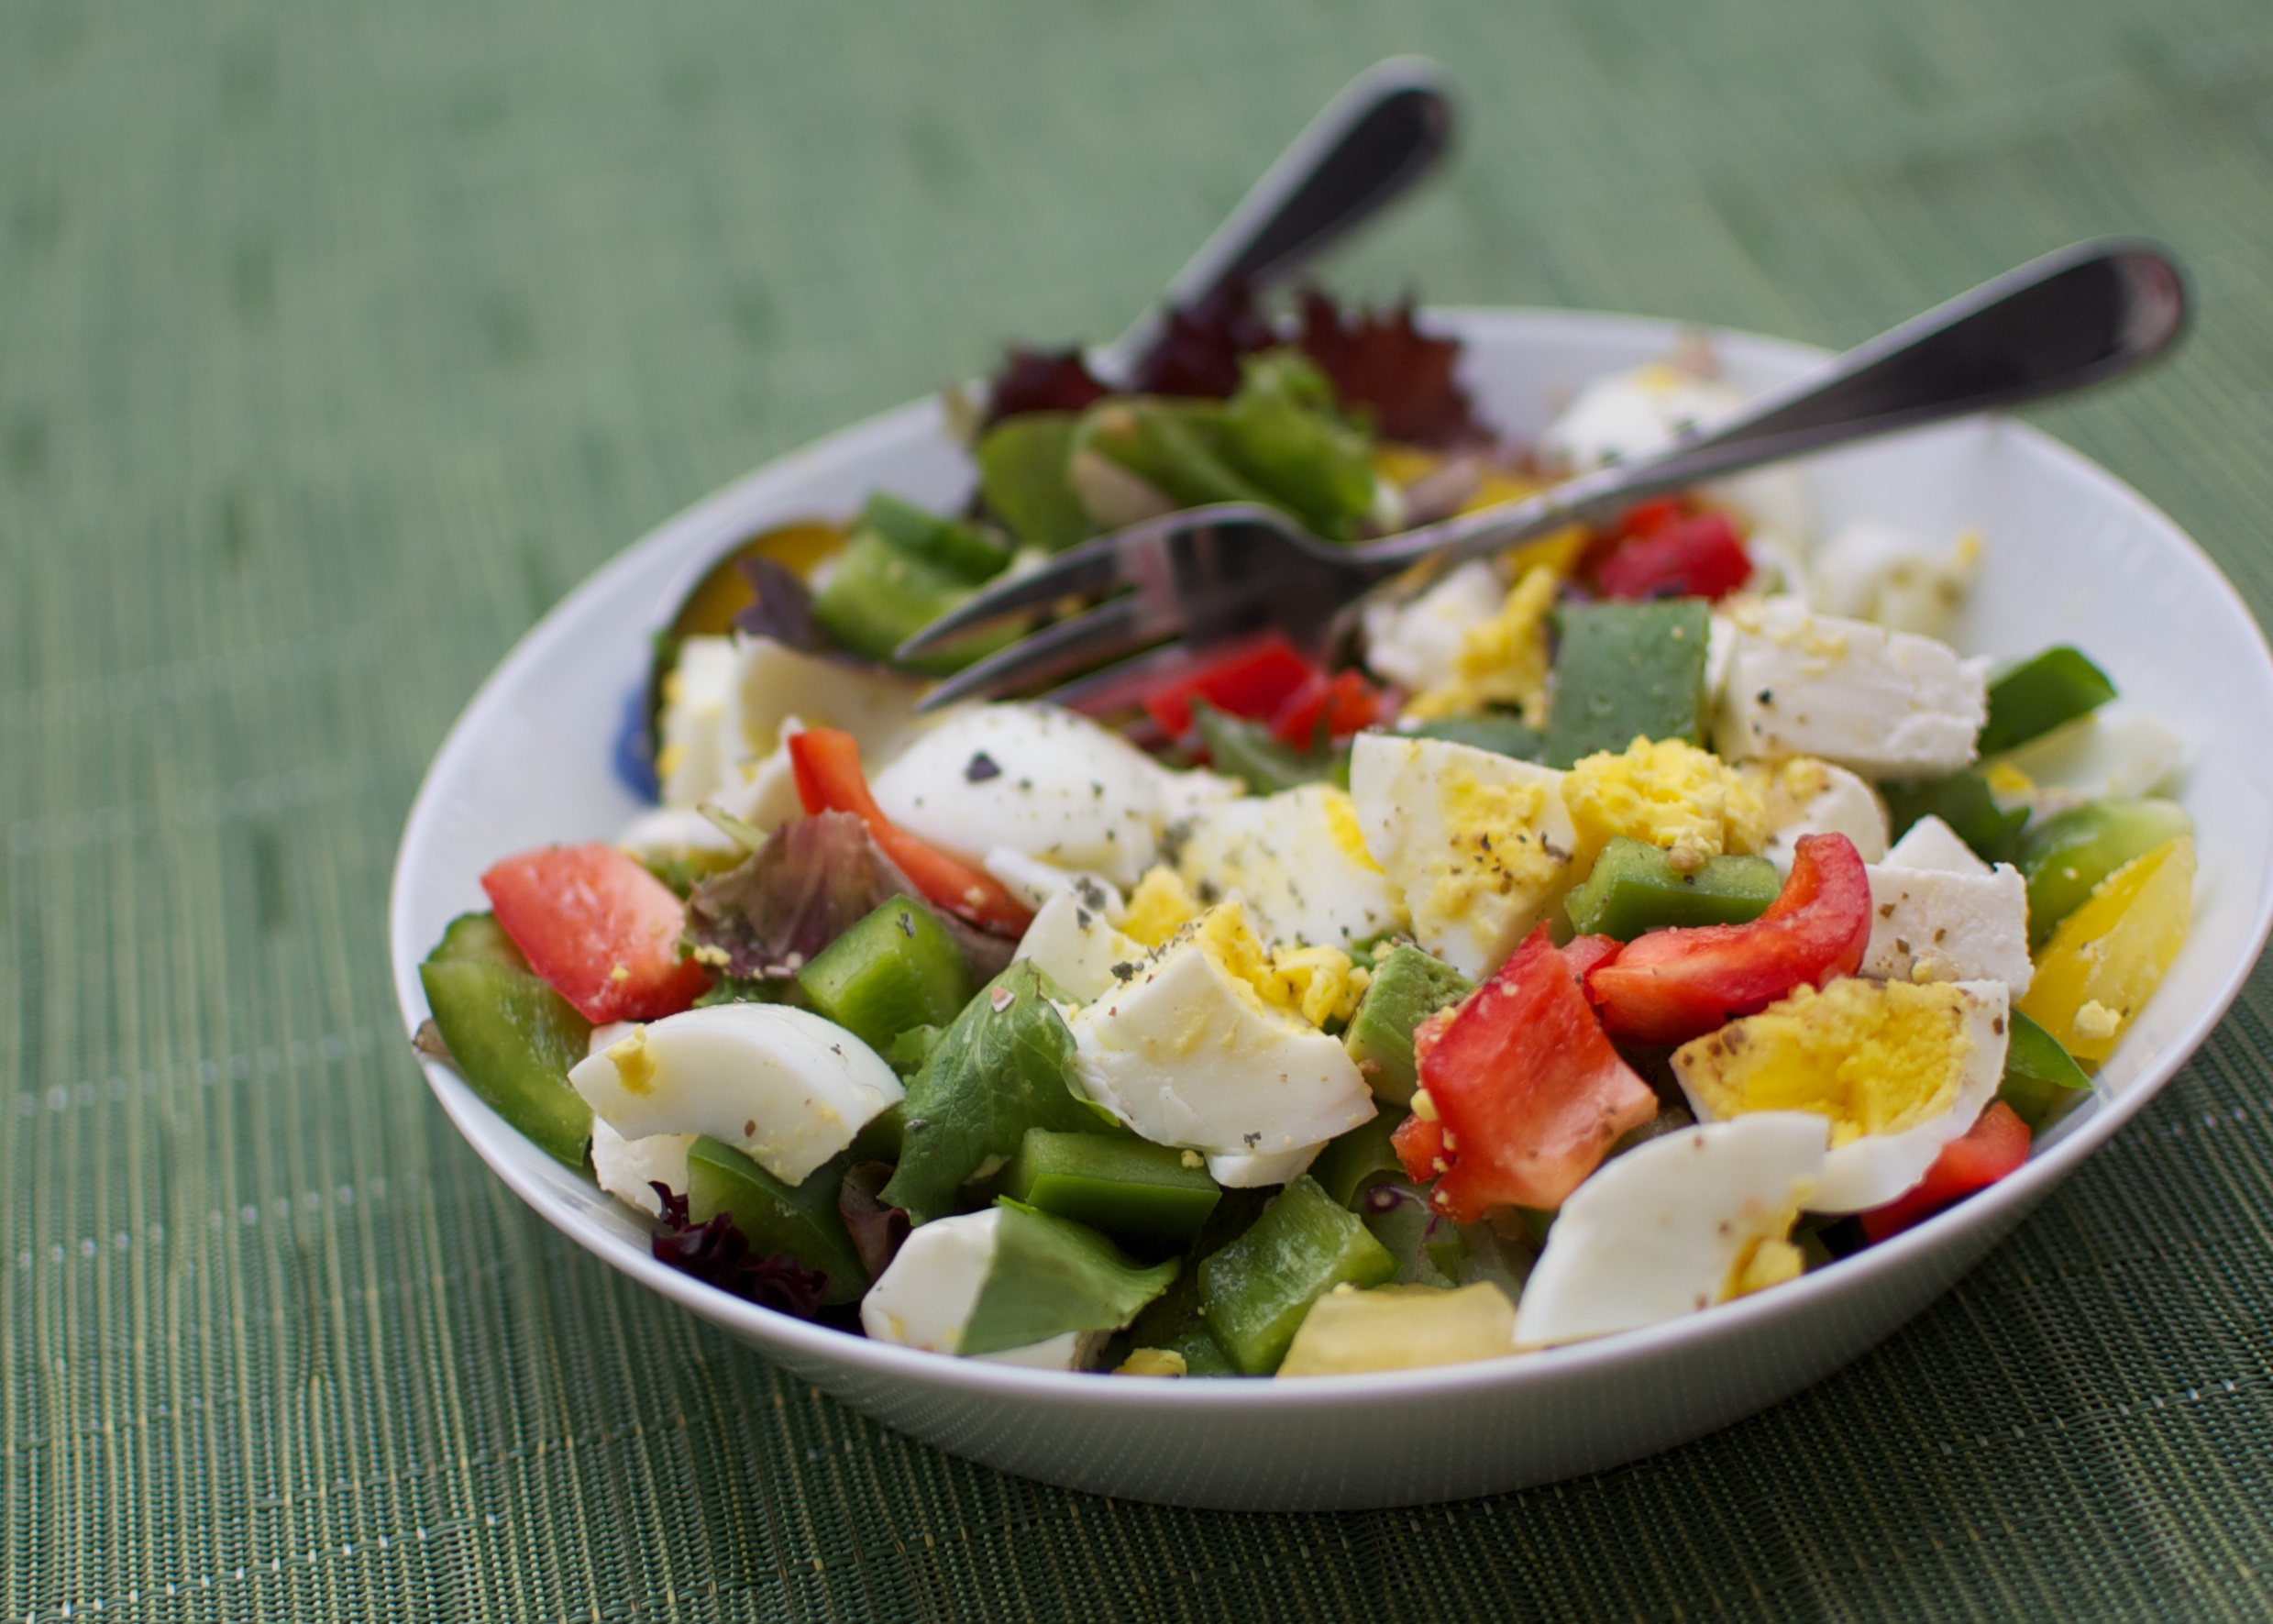 Egg Salad as a Healthy meal for kids